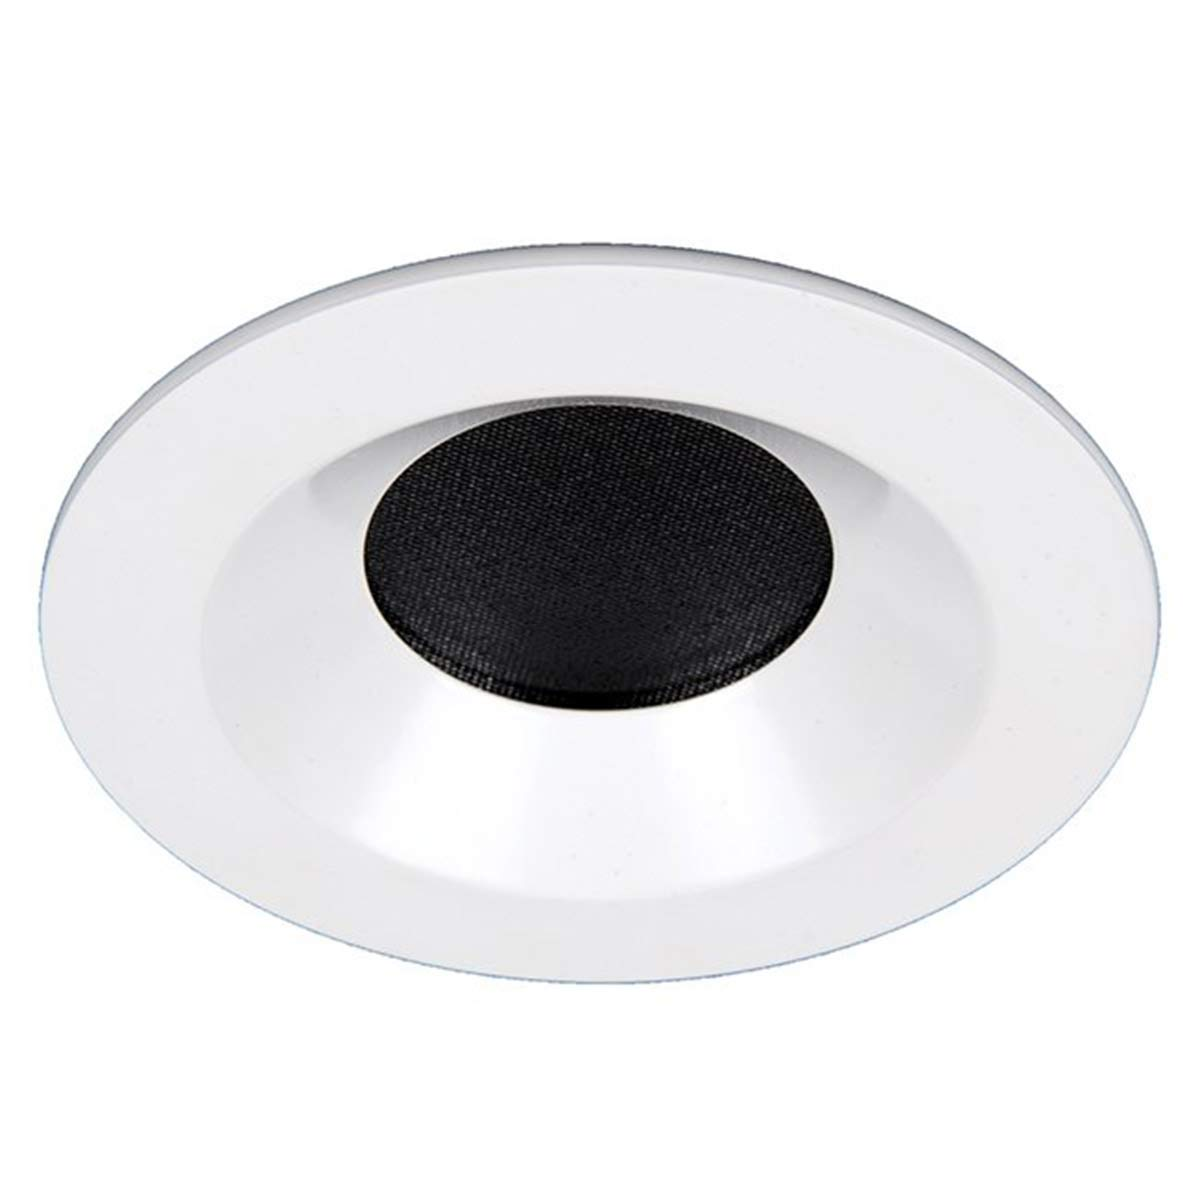 WAC Lighting R3CRDT-WT Oculux Architectural 3.5'' LED Round Open Reflector Trim White